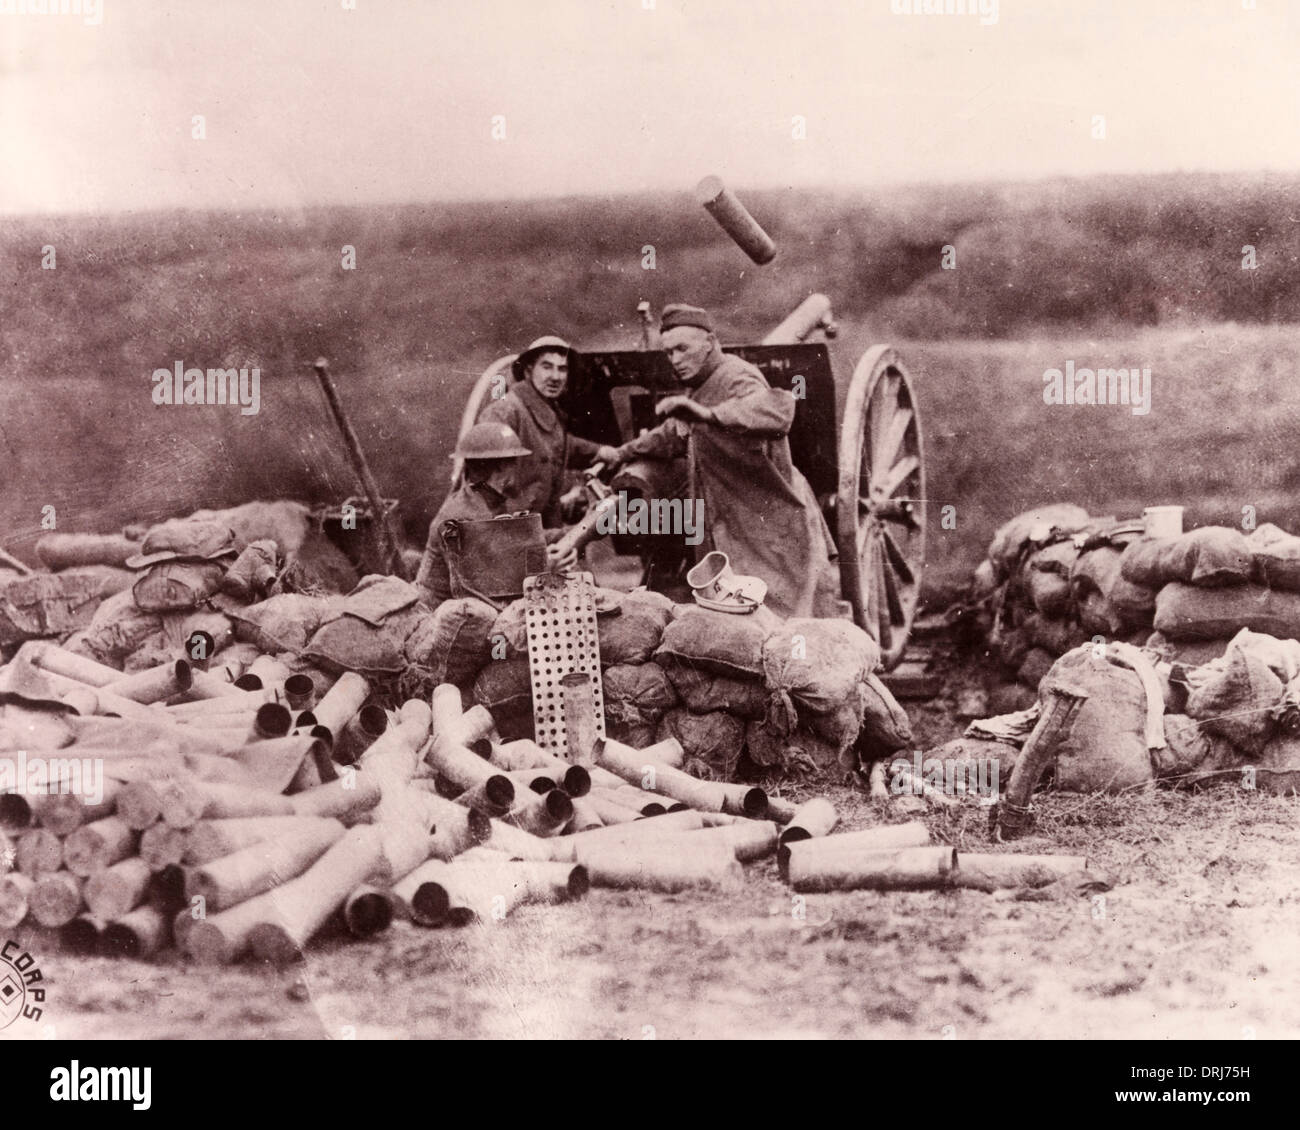 American troops with 75 mm French field gun, France, WW1 - Stock Image